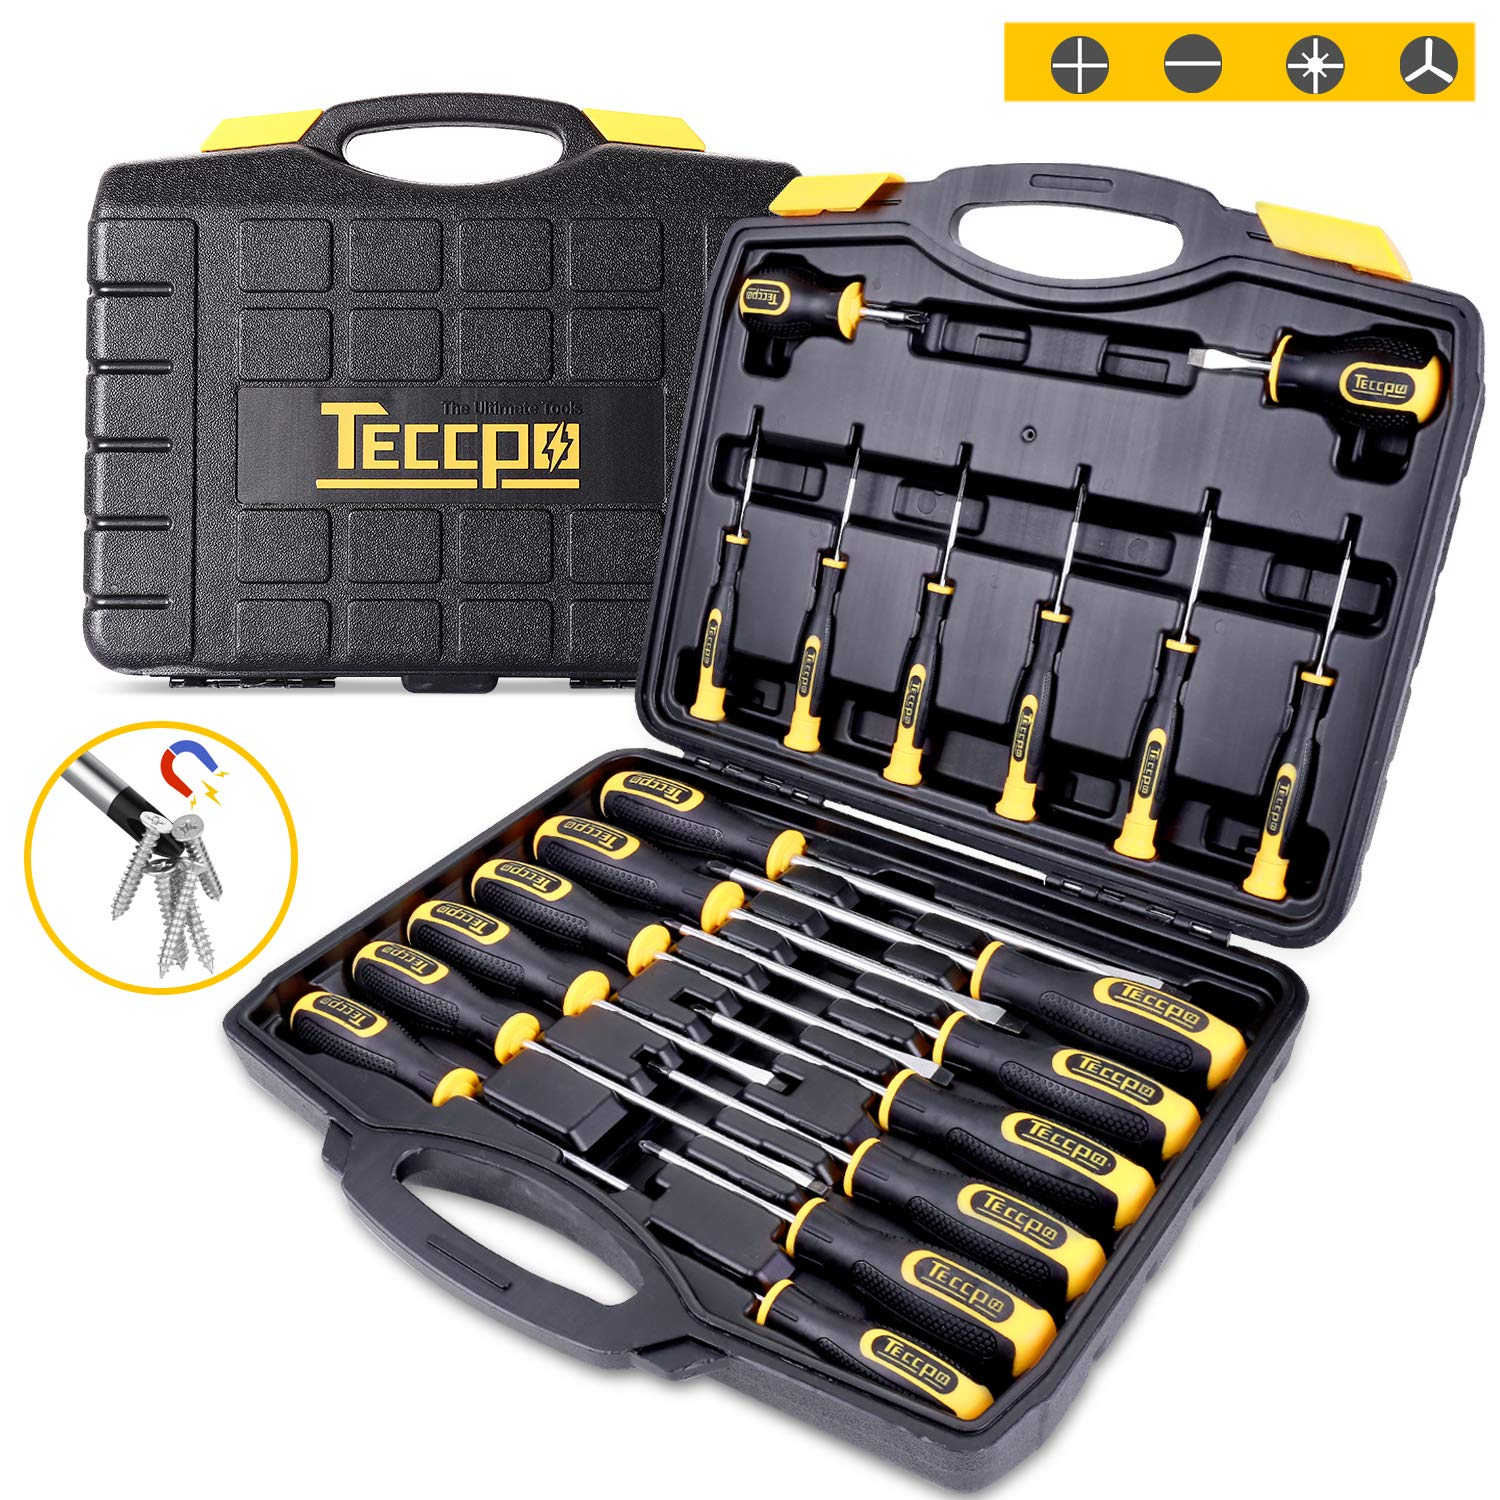 Screwdriver Set, Magnetic 20-Piece Screwdriver Tool Set with Case, 6150CRV, Precision Slotted/Phillips/Torx Screwdriver with Heavy Duty Non-Slip Tips, Craftsman Tool Kits TECCPO-THTC03H by TECCPO